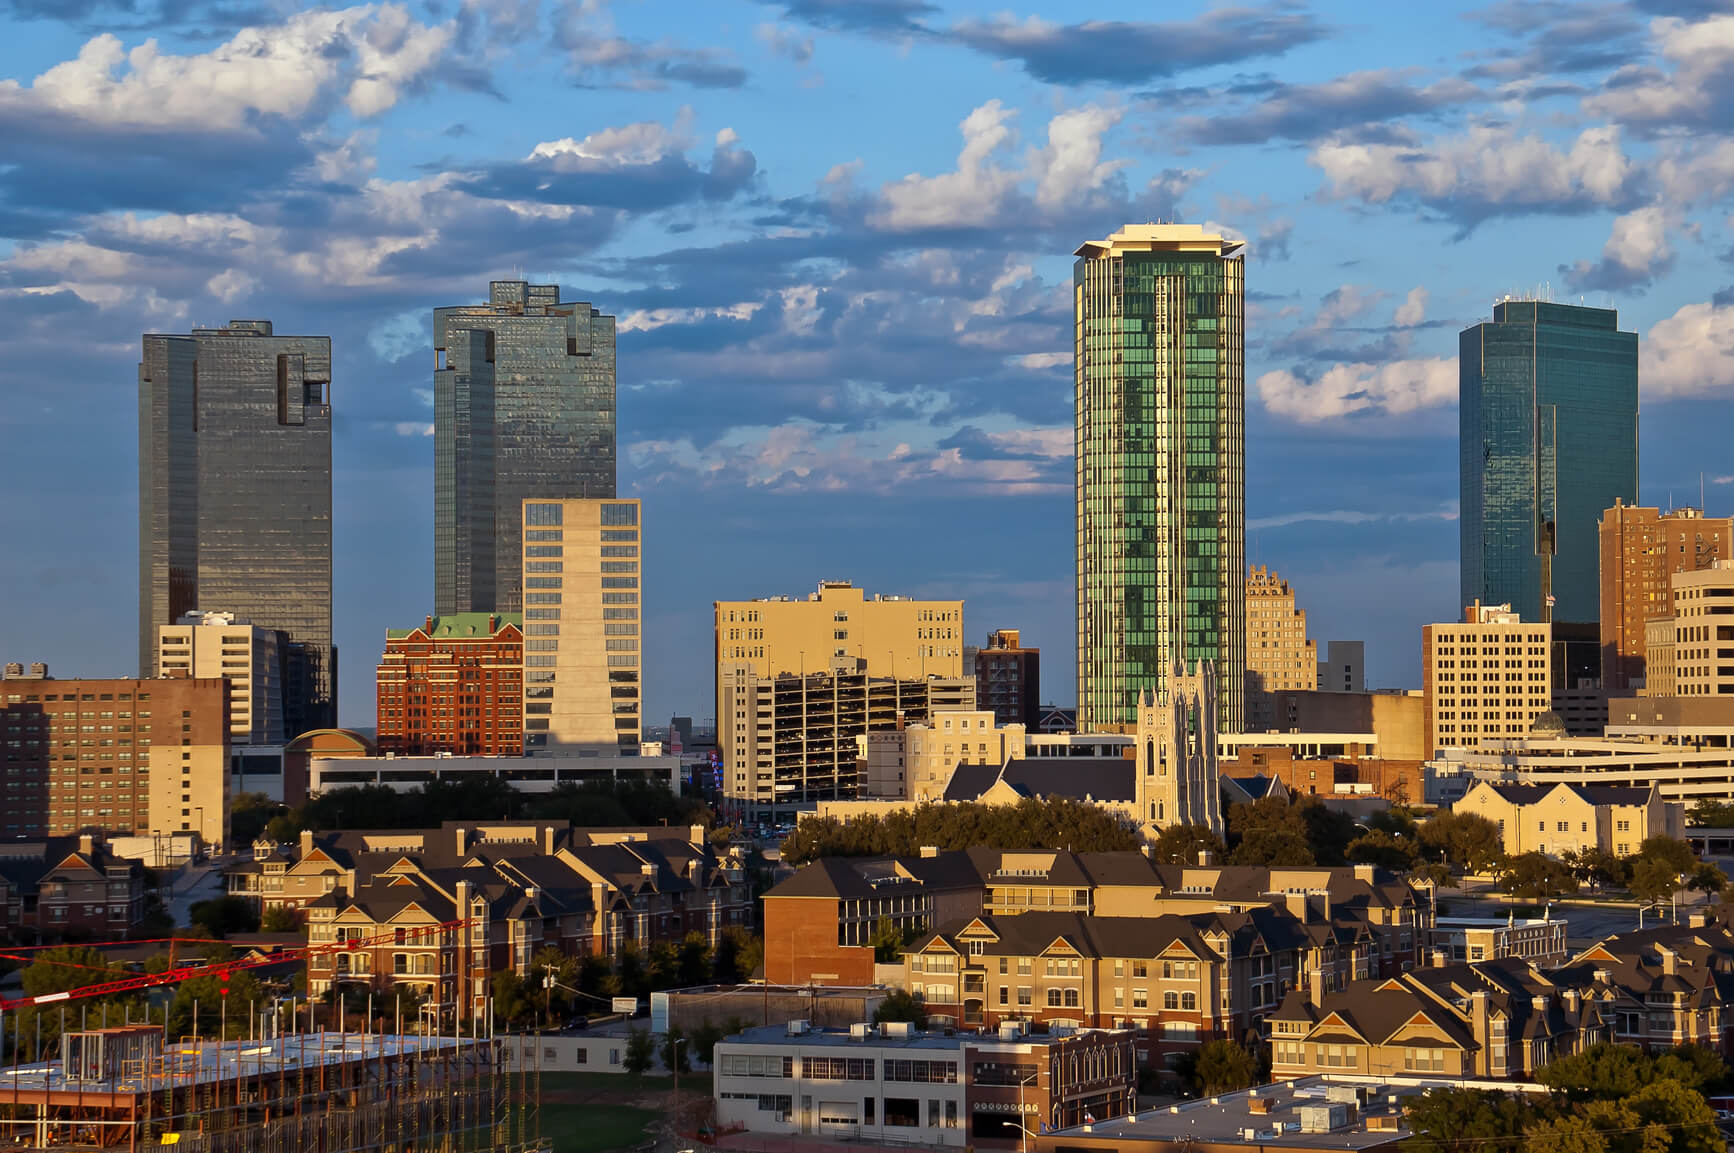 SUMMER: Non-stop from Chicago to Dallas, Texas (& vice versa) for only $74 roundtrip (Aug-Dec dates)